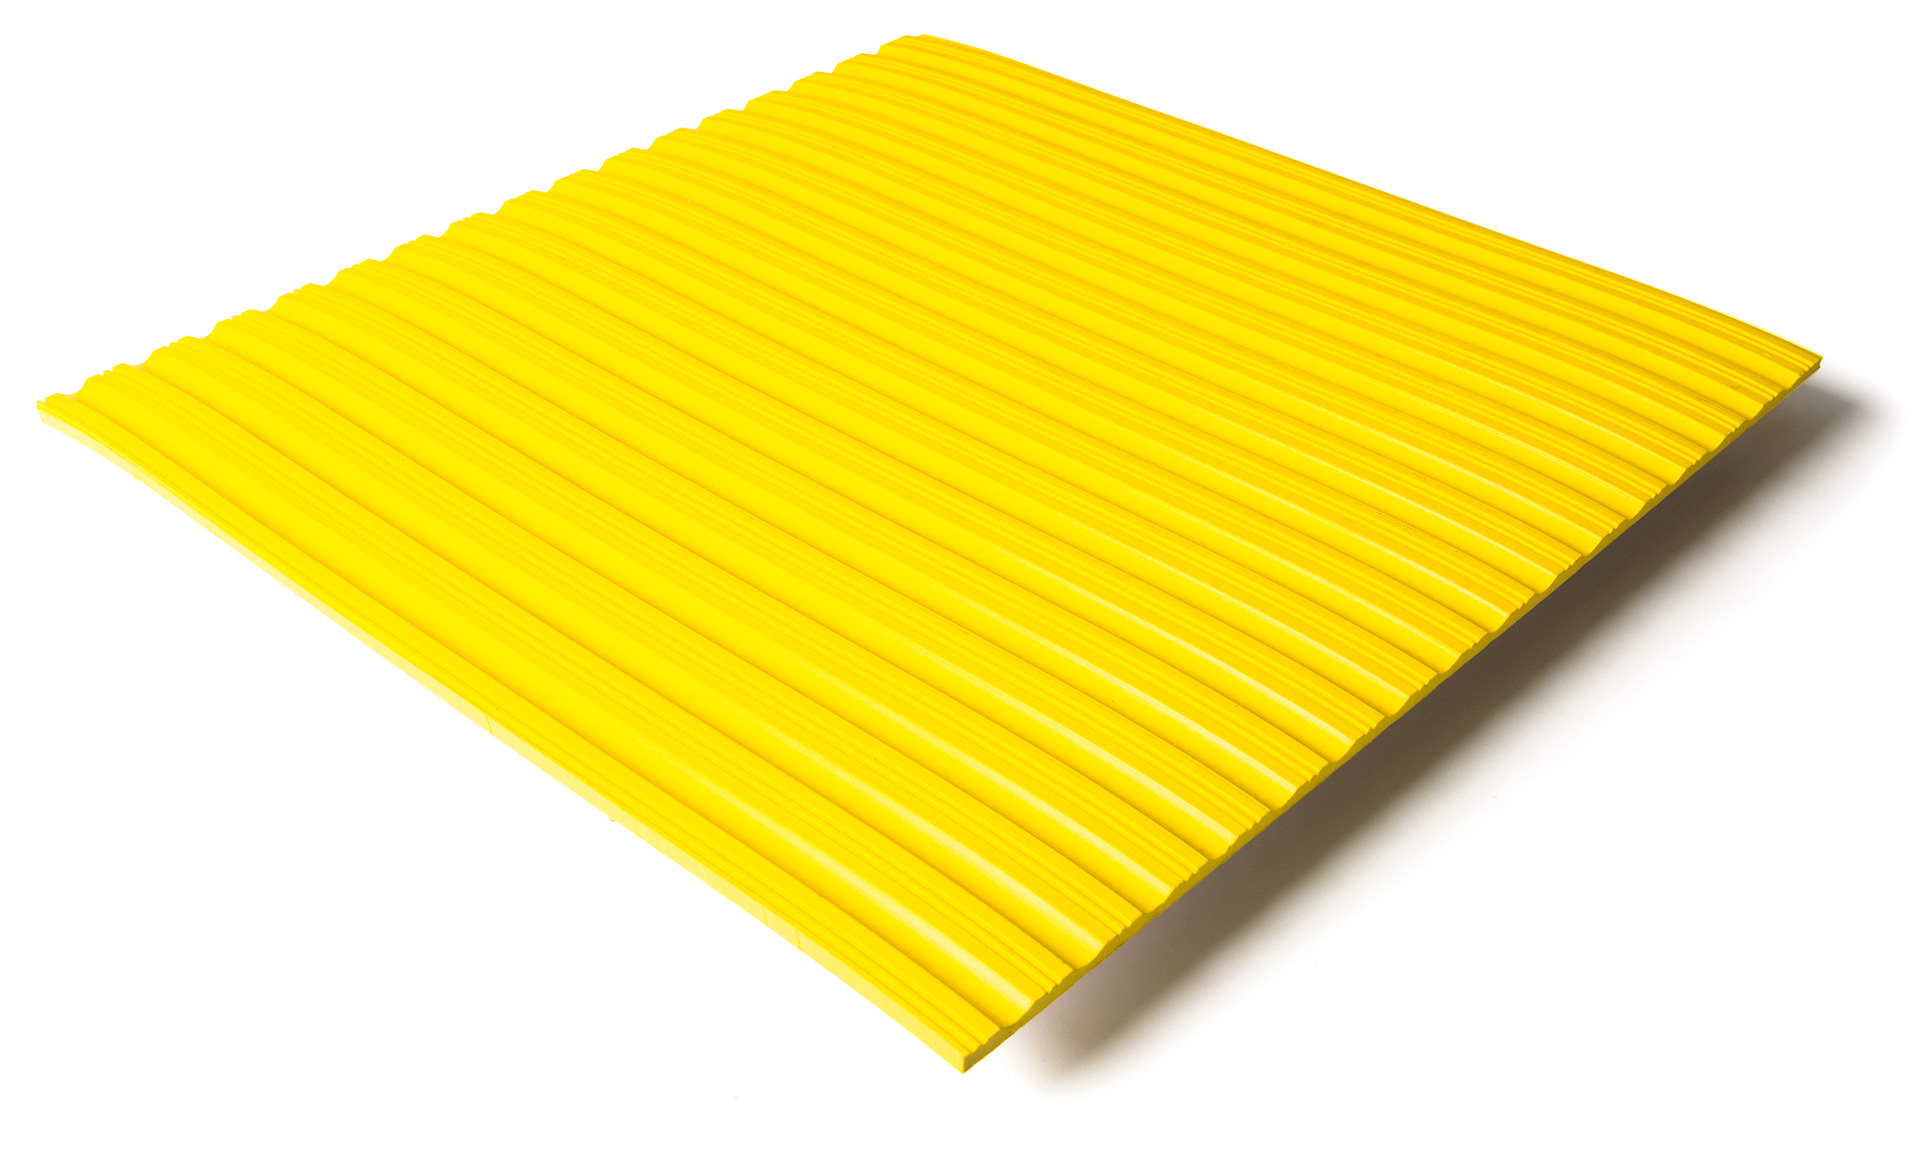 Standard transit flooring in yellow, ribbed